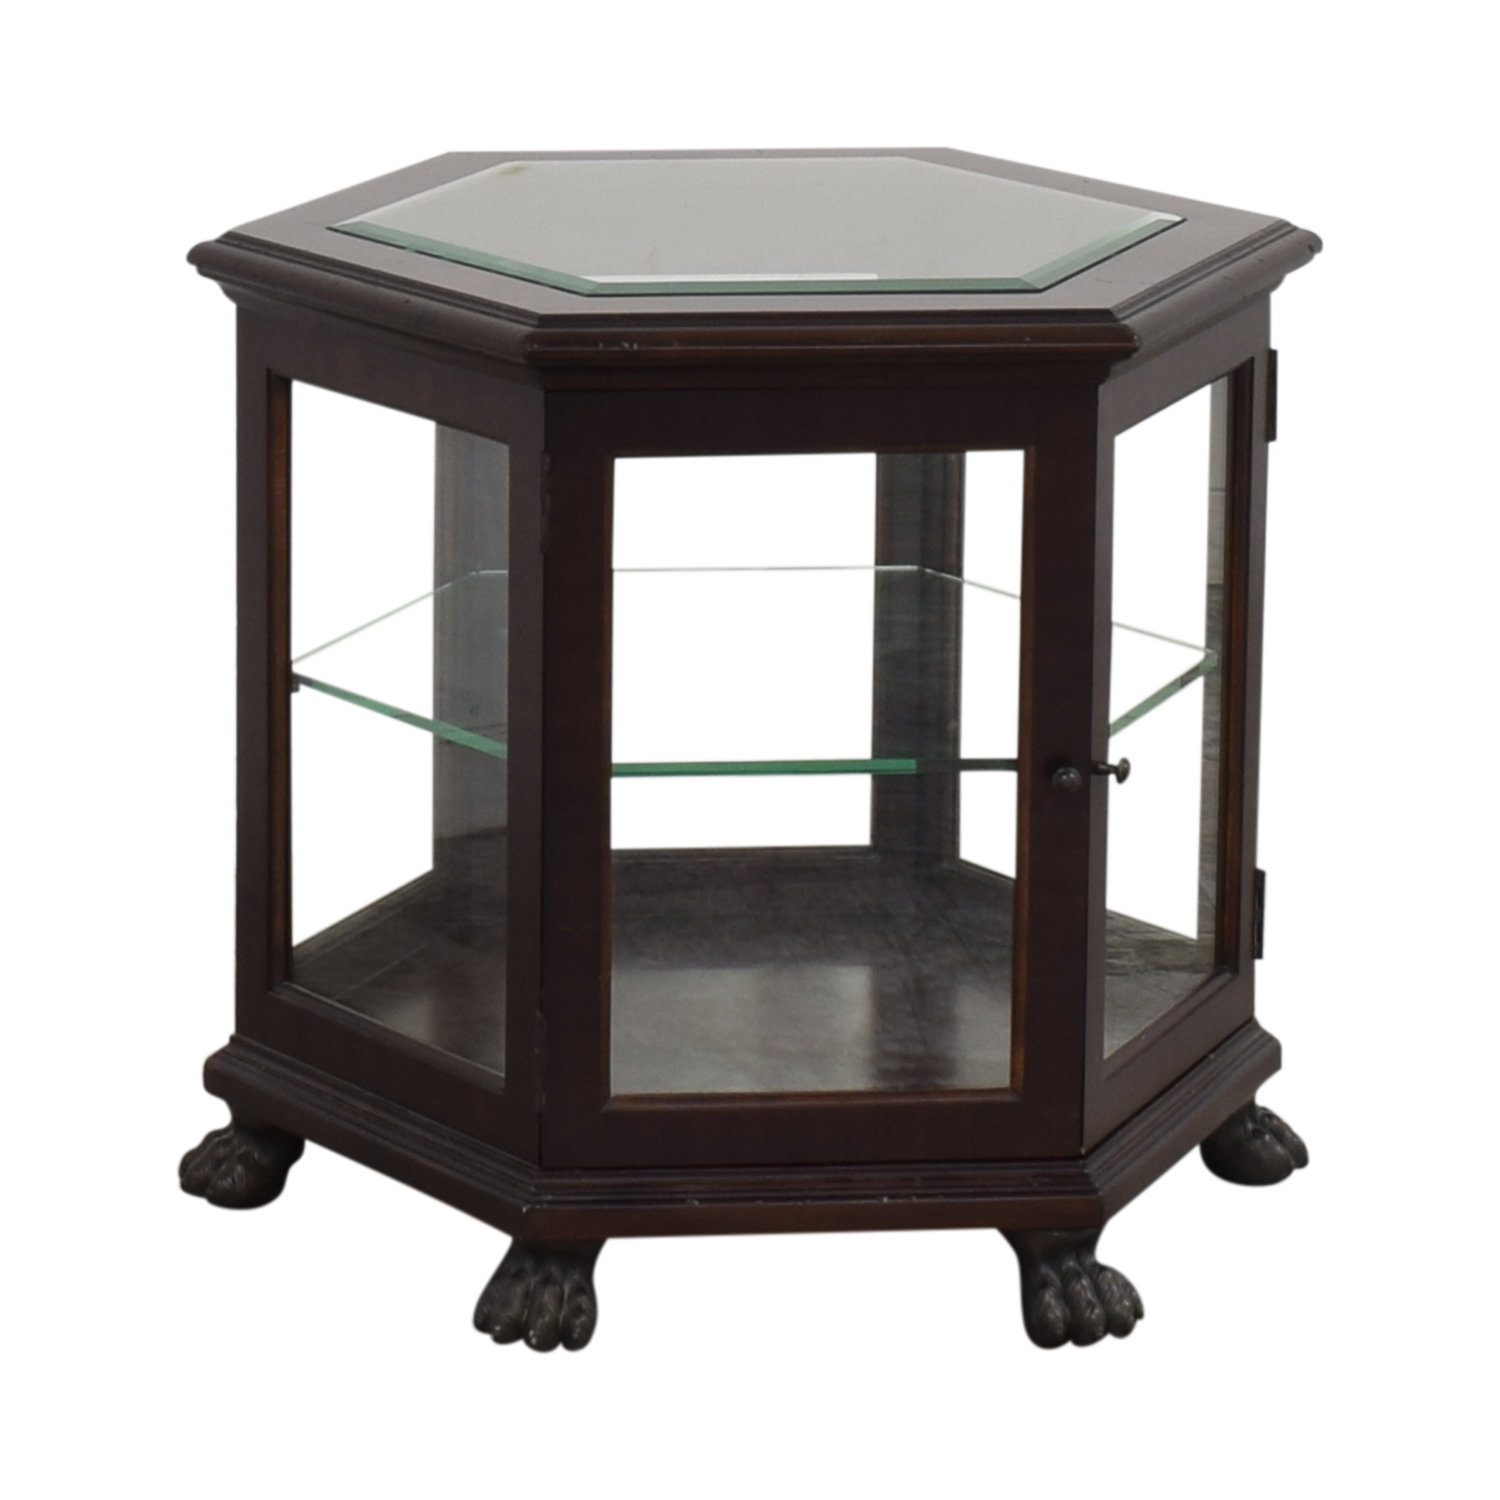 Thomasville Thomasville End Table with Storage pa